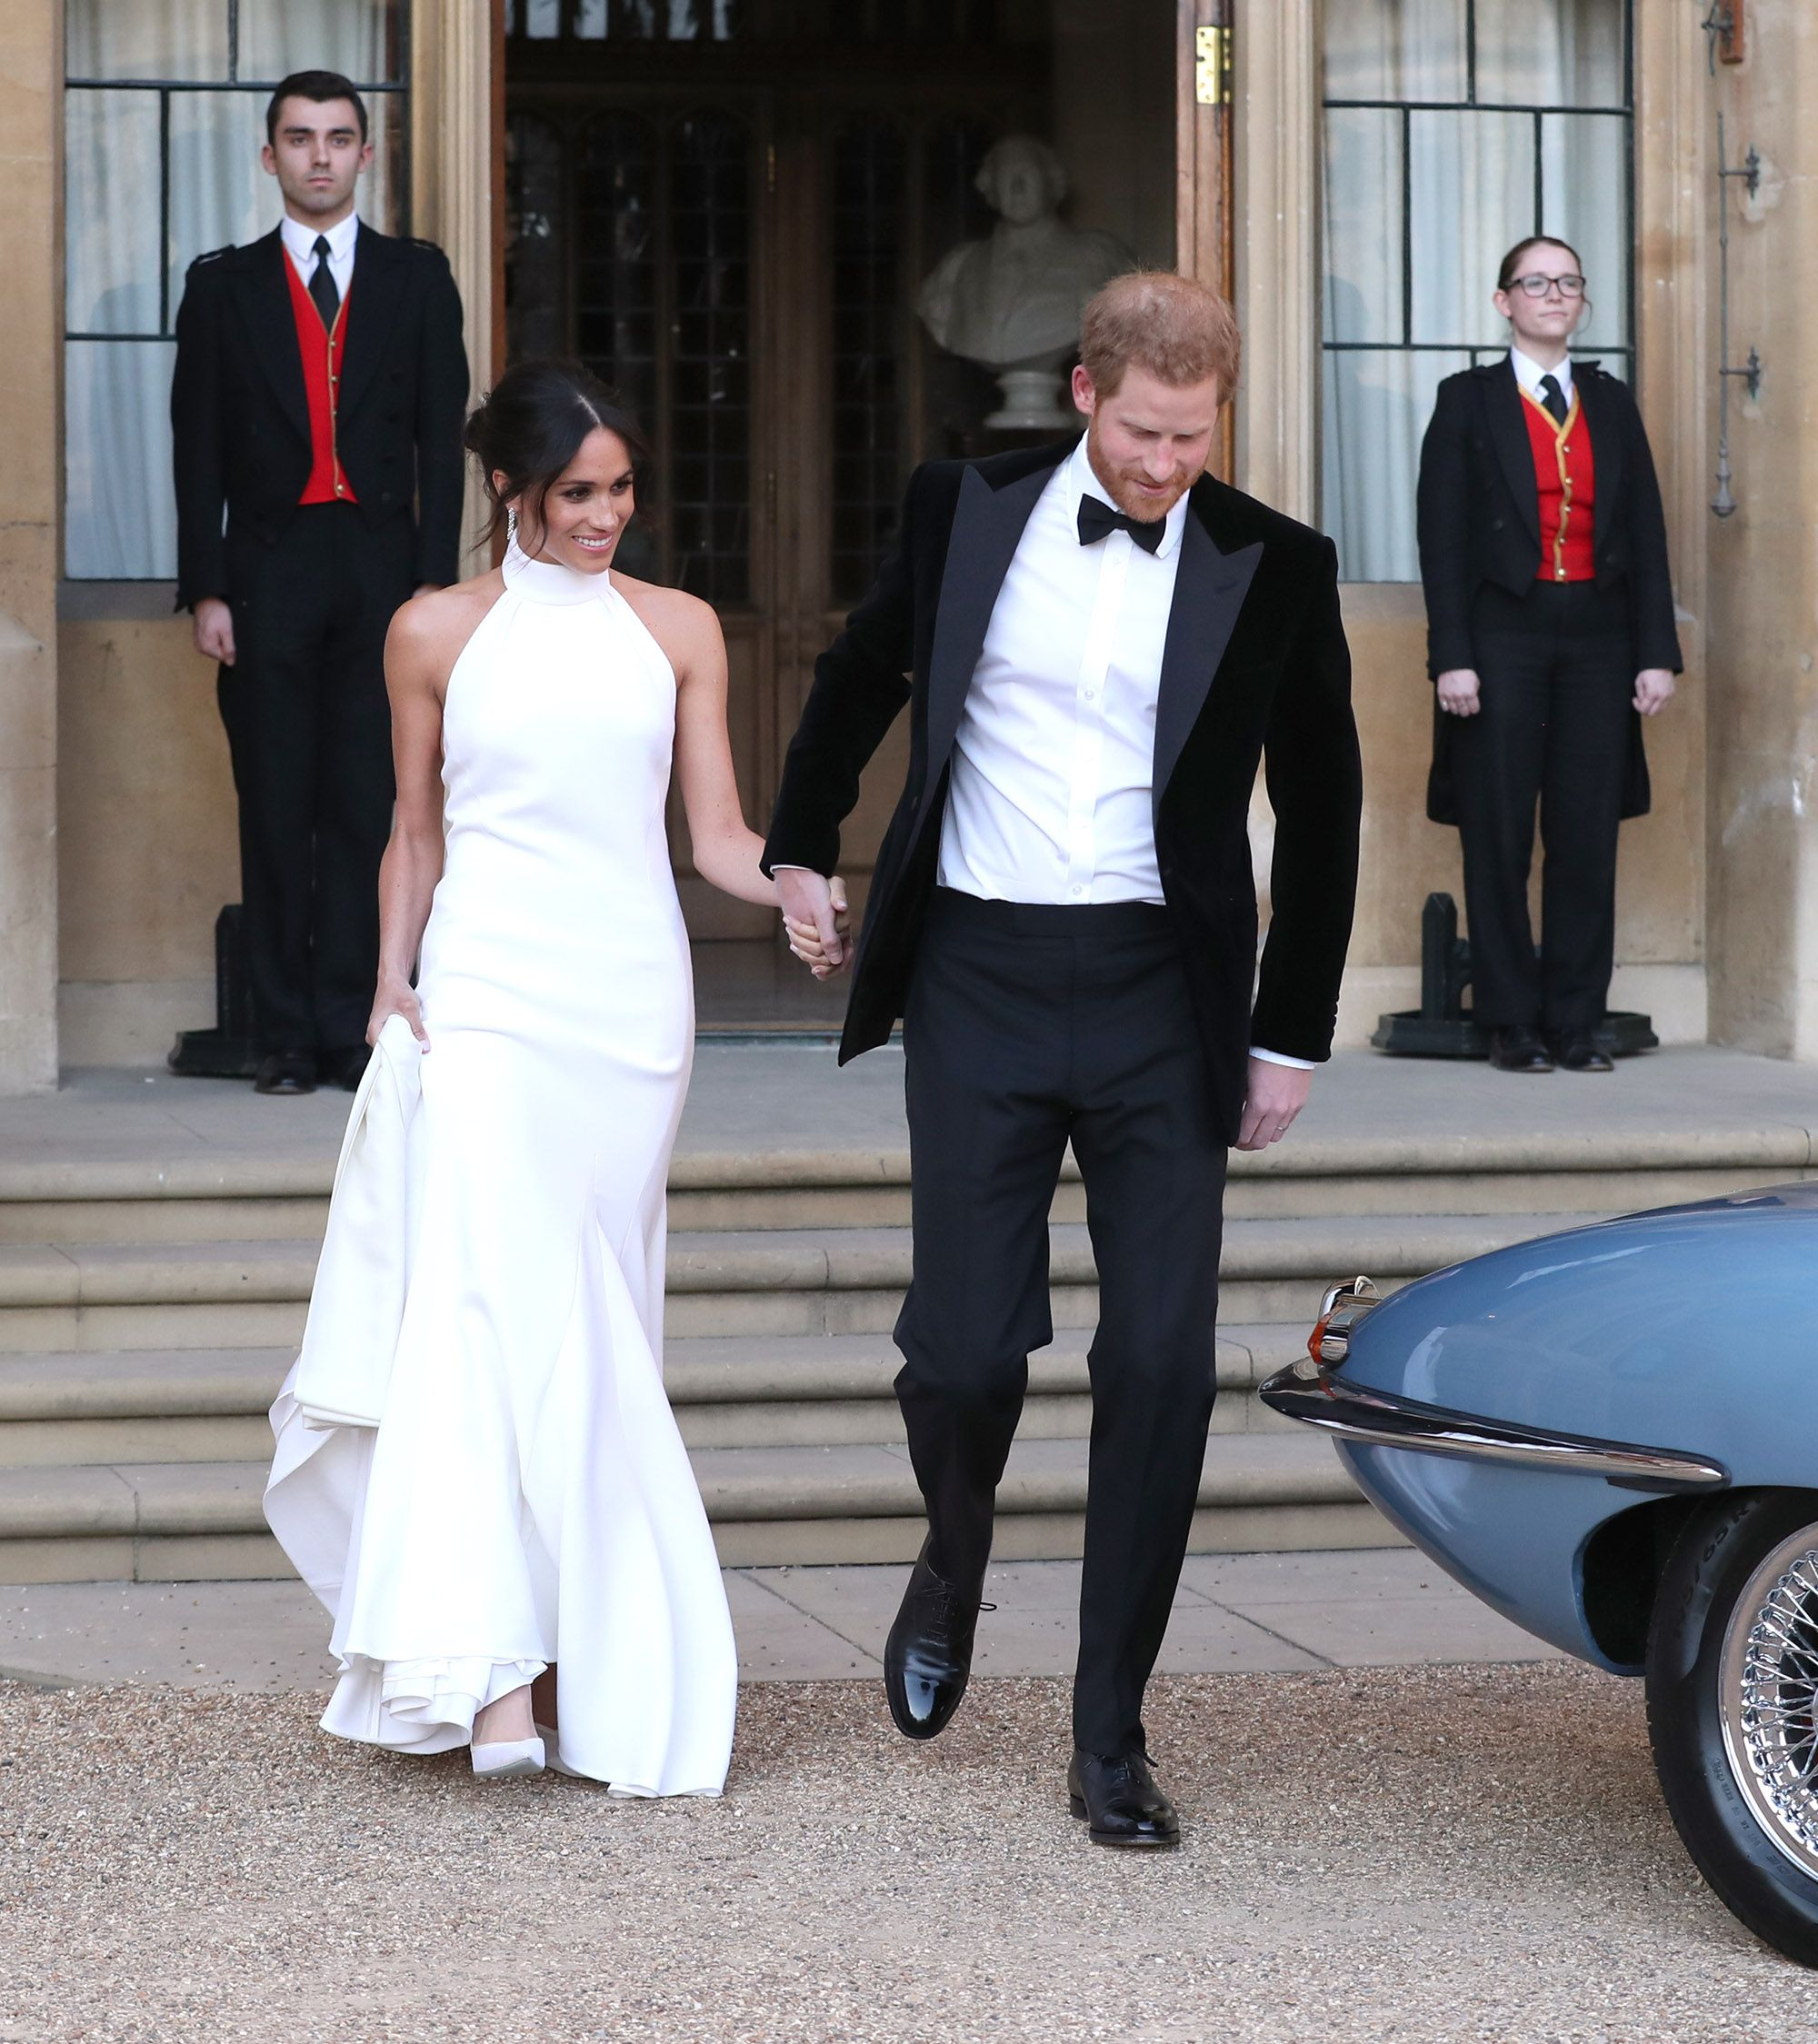 Meghan Markle wears a white Stella McCartney dress to her wedding reception.